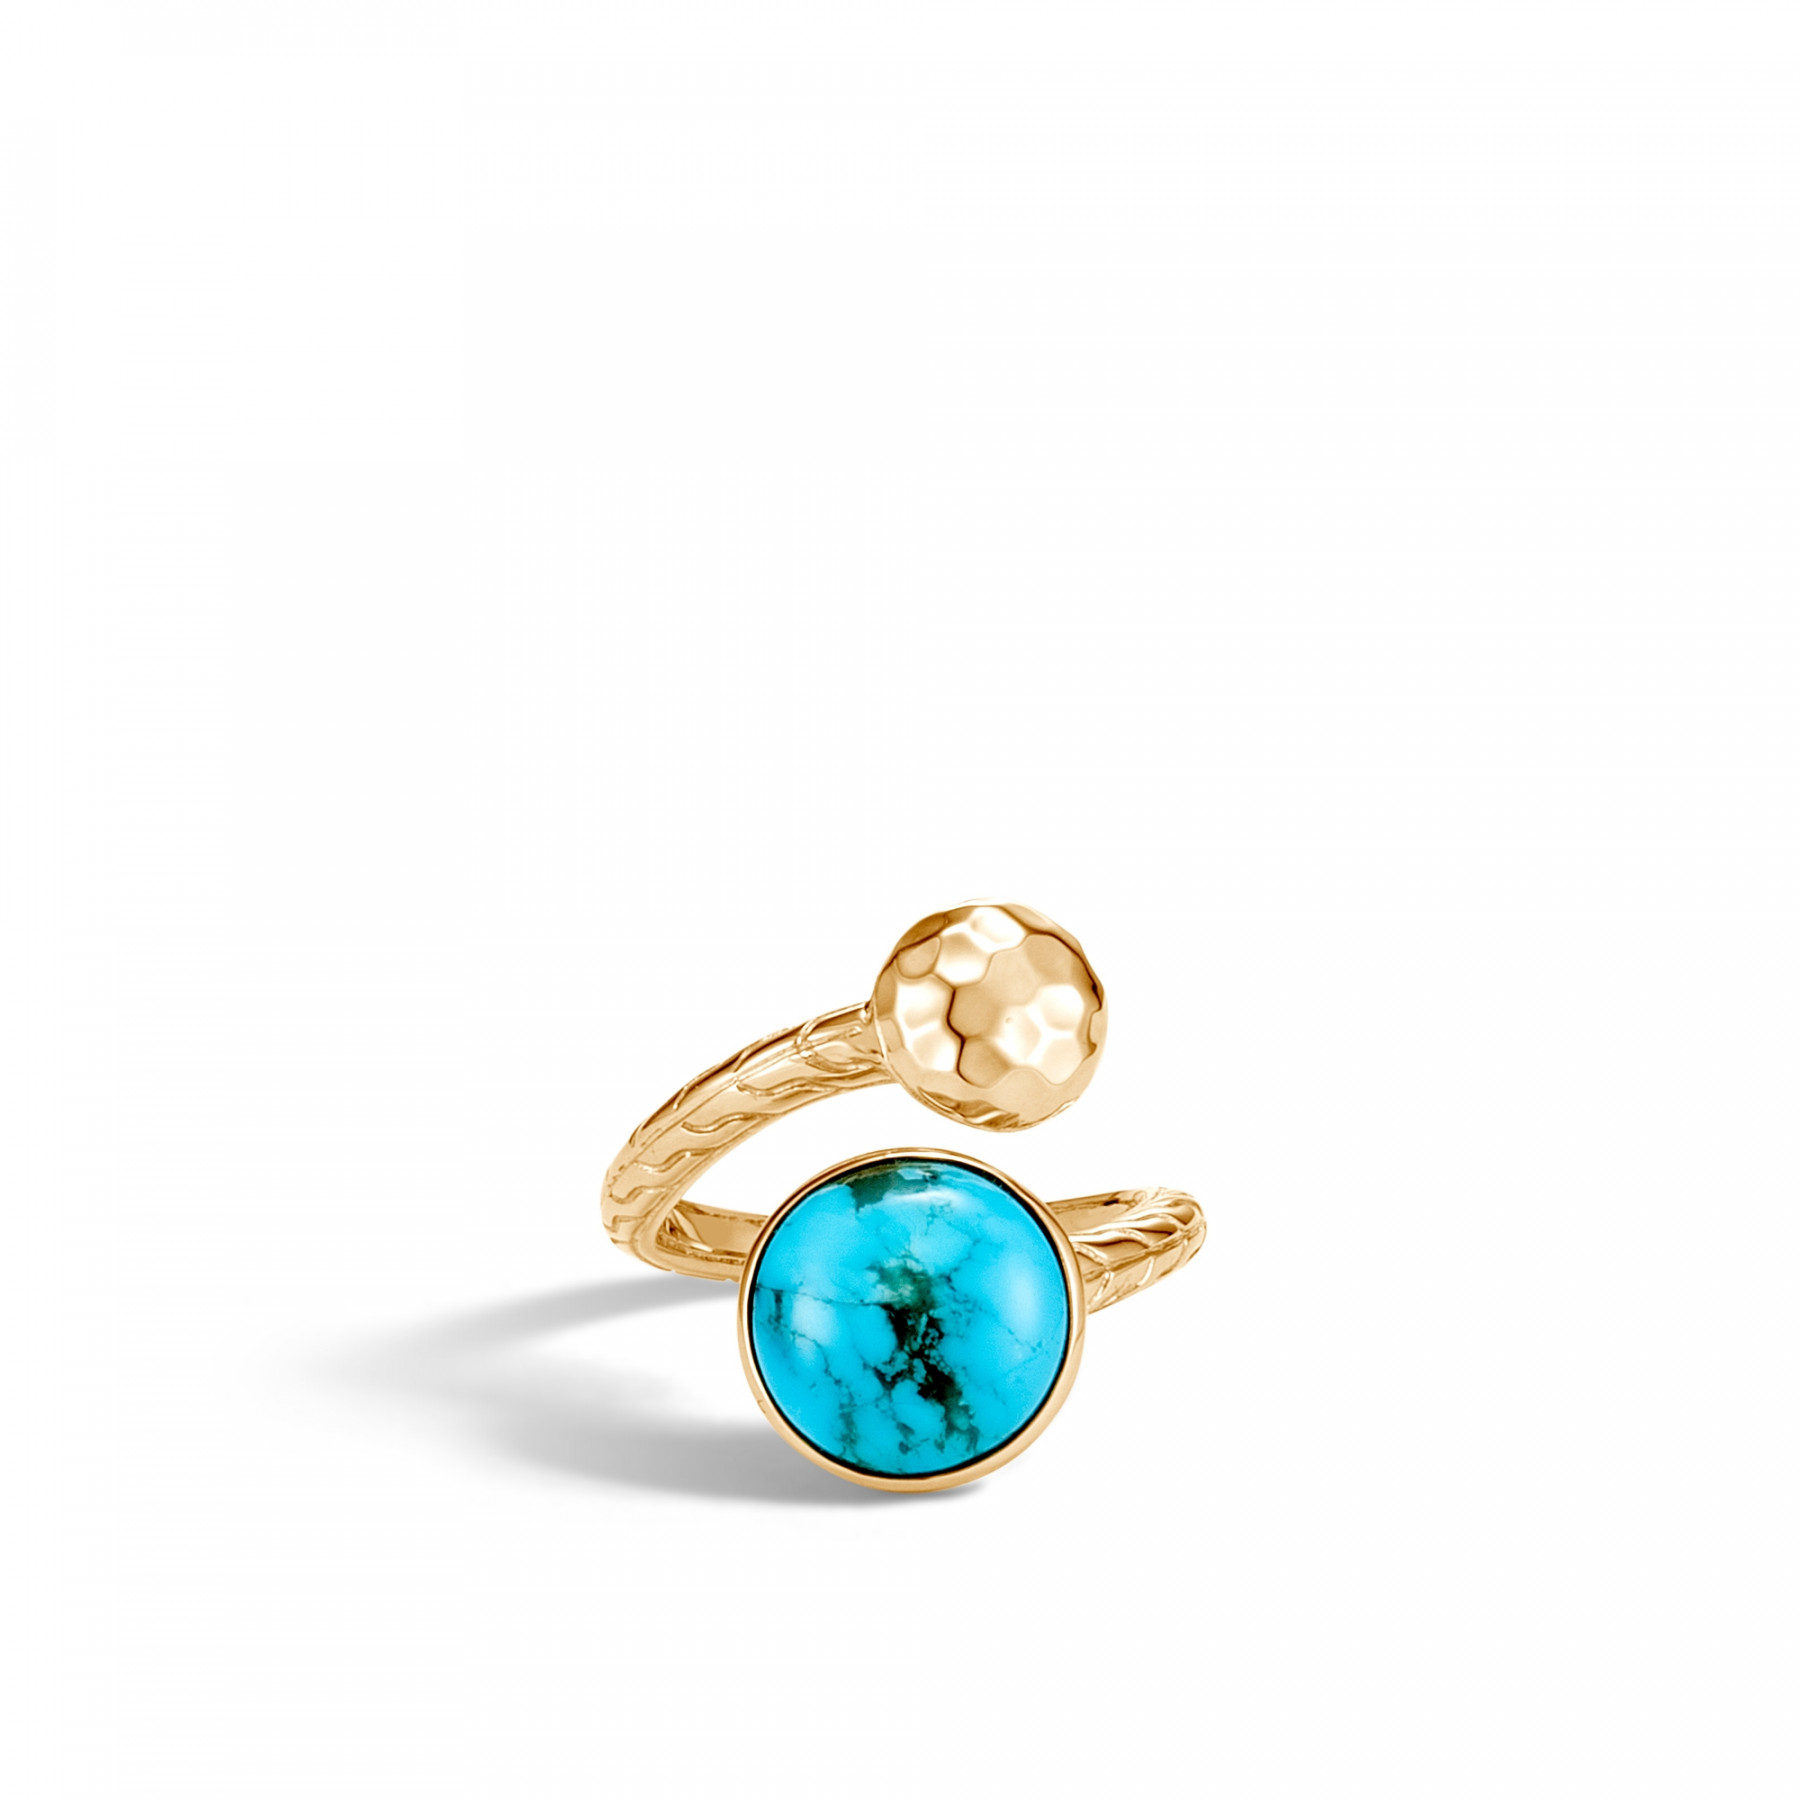 John Hardy Dot Bypass Turquoise Ring in 18k Yellow Gold front view